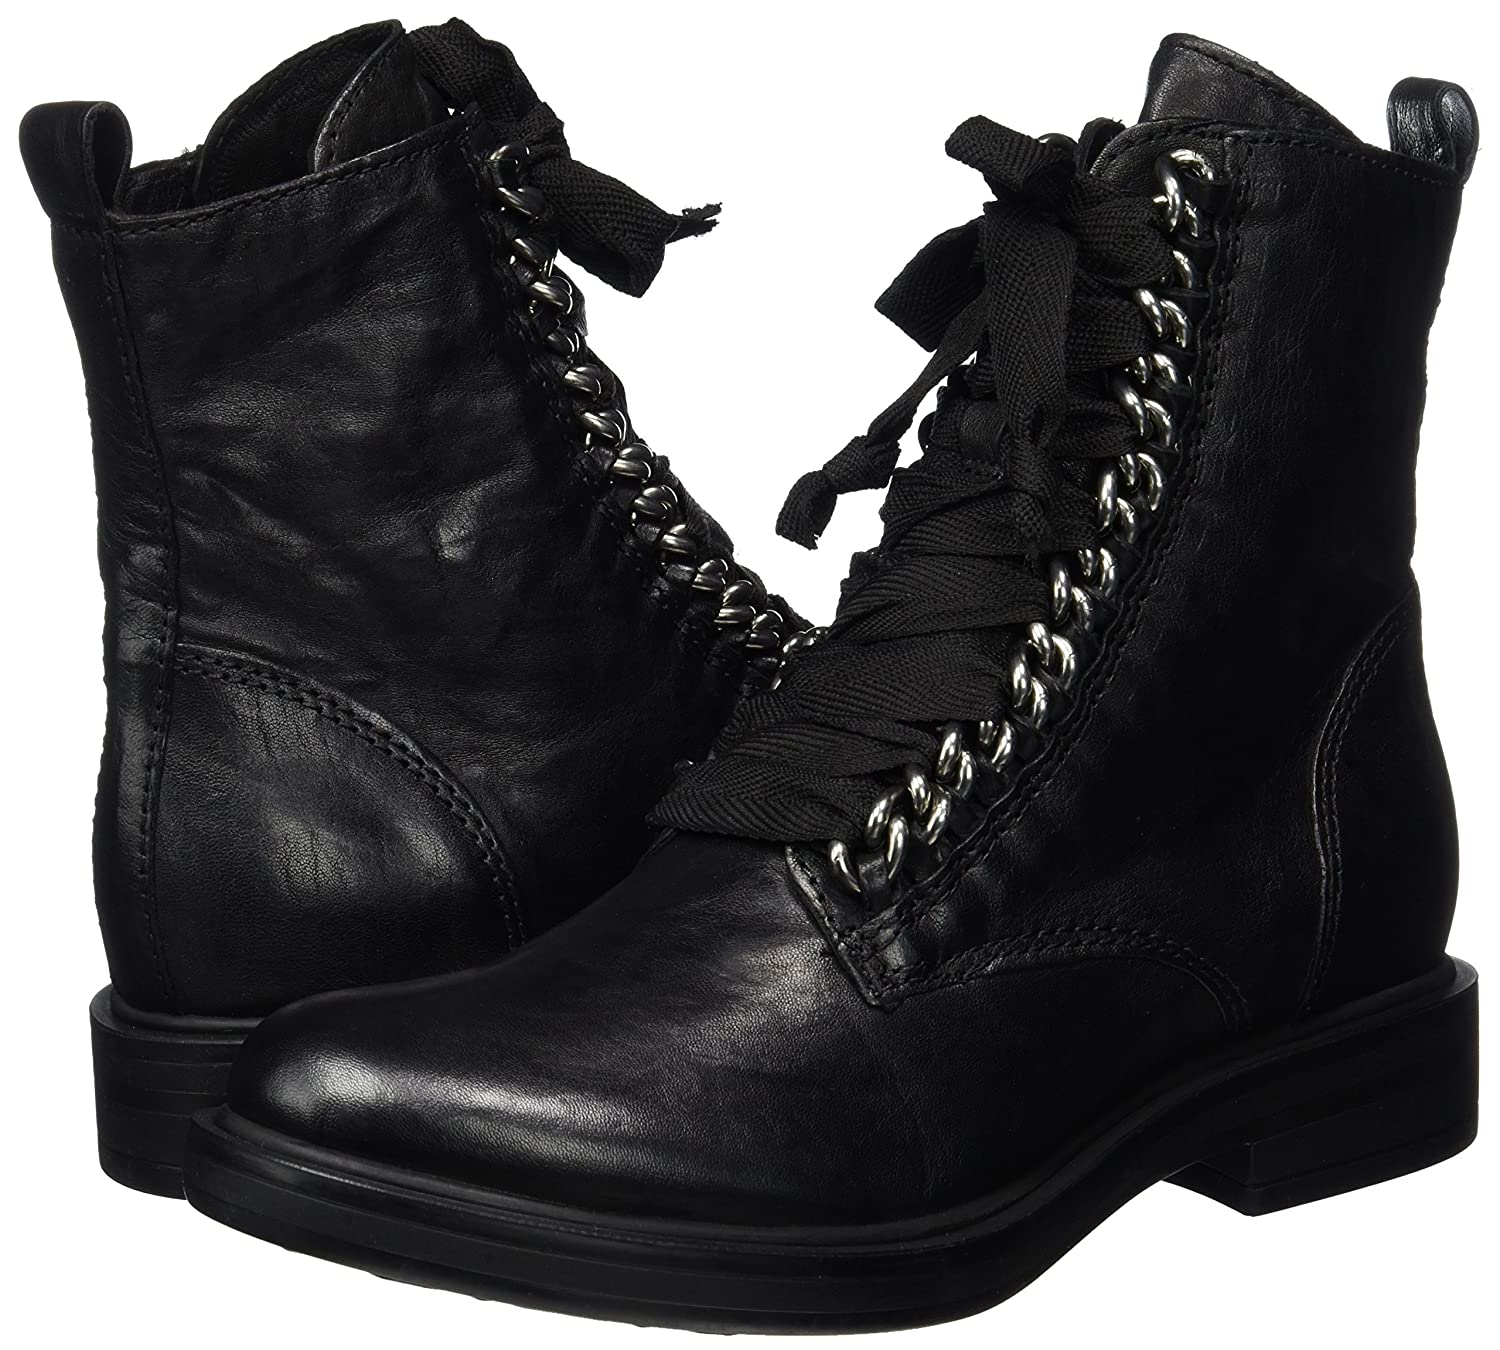 Good Selling Sale Online Mjus Women's 544229-0802-6002 Combat Boots For Nice Sale Online Cheap With Credit Card Outlet Excellent iYo301